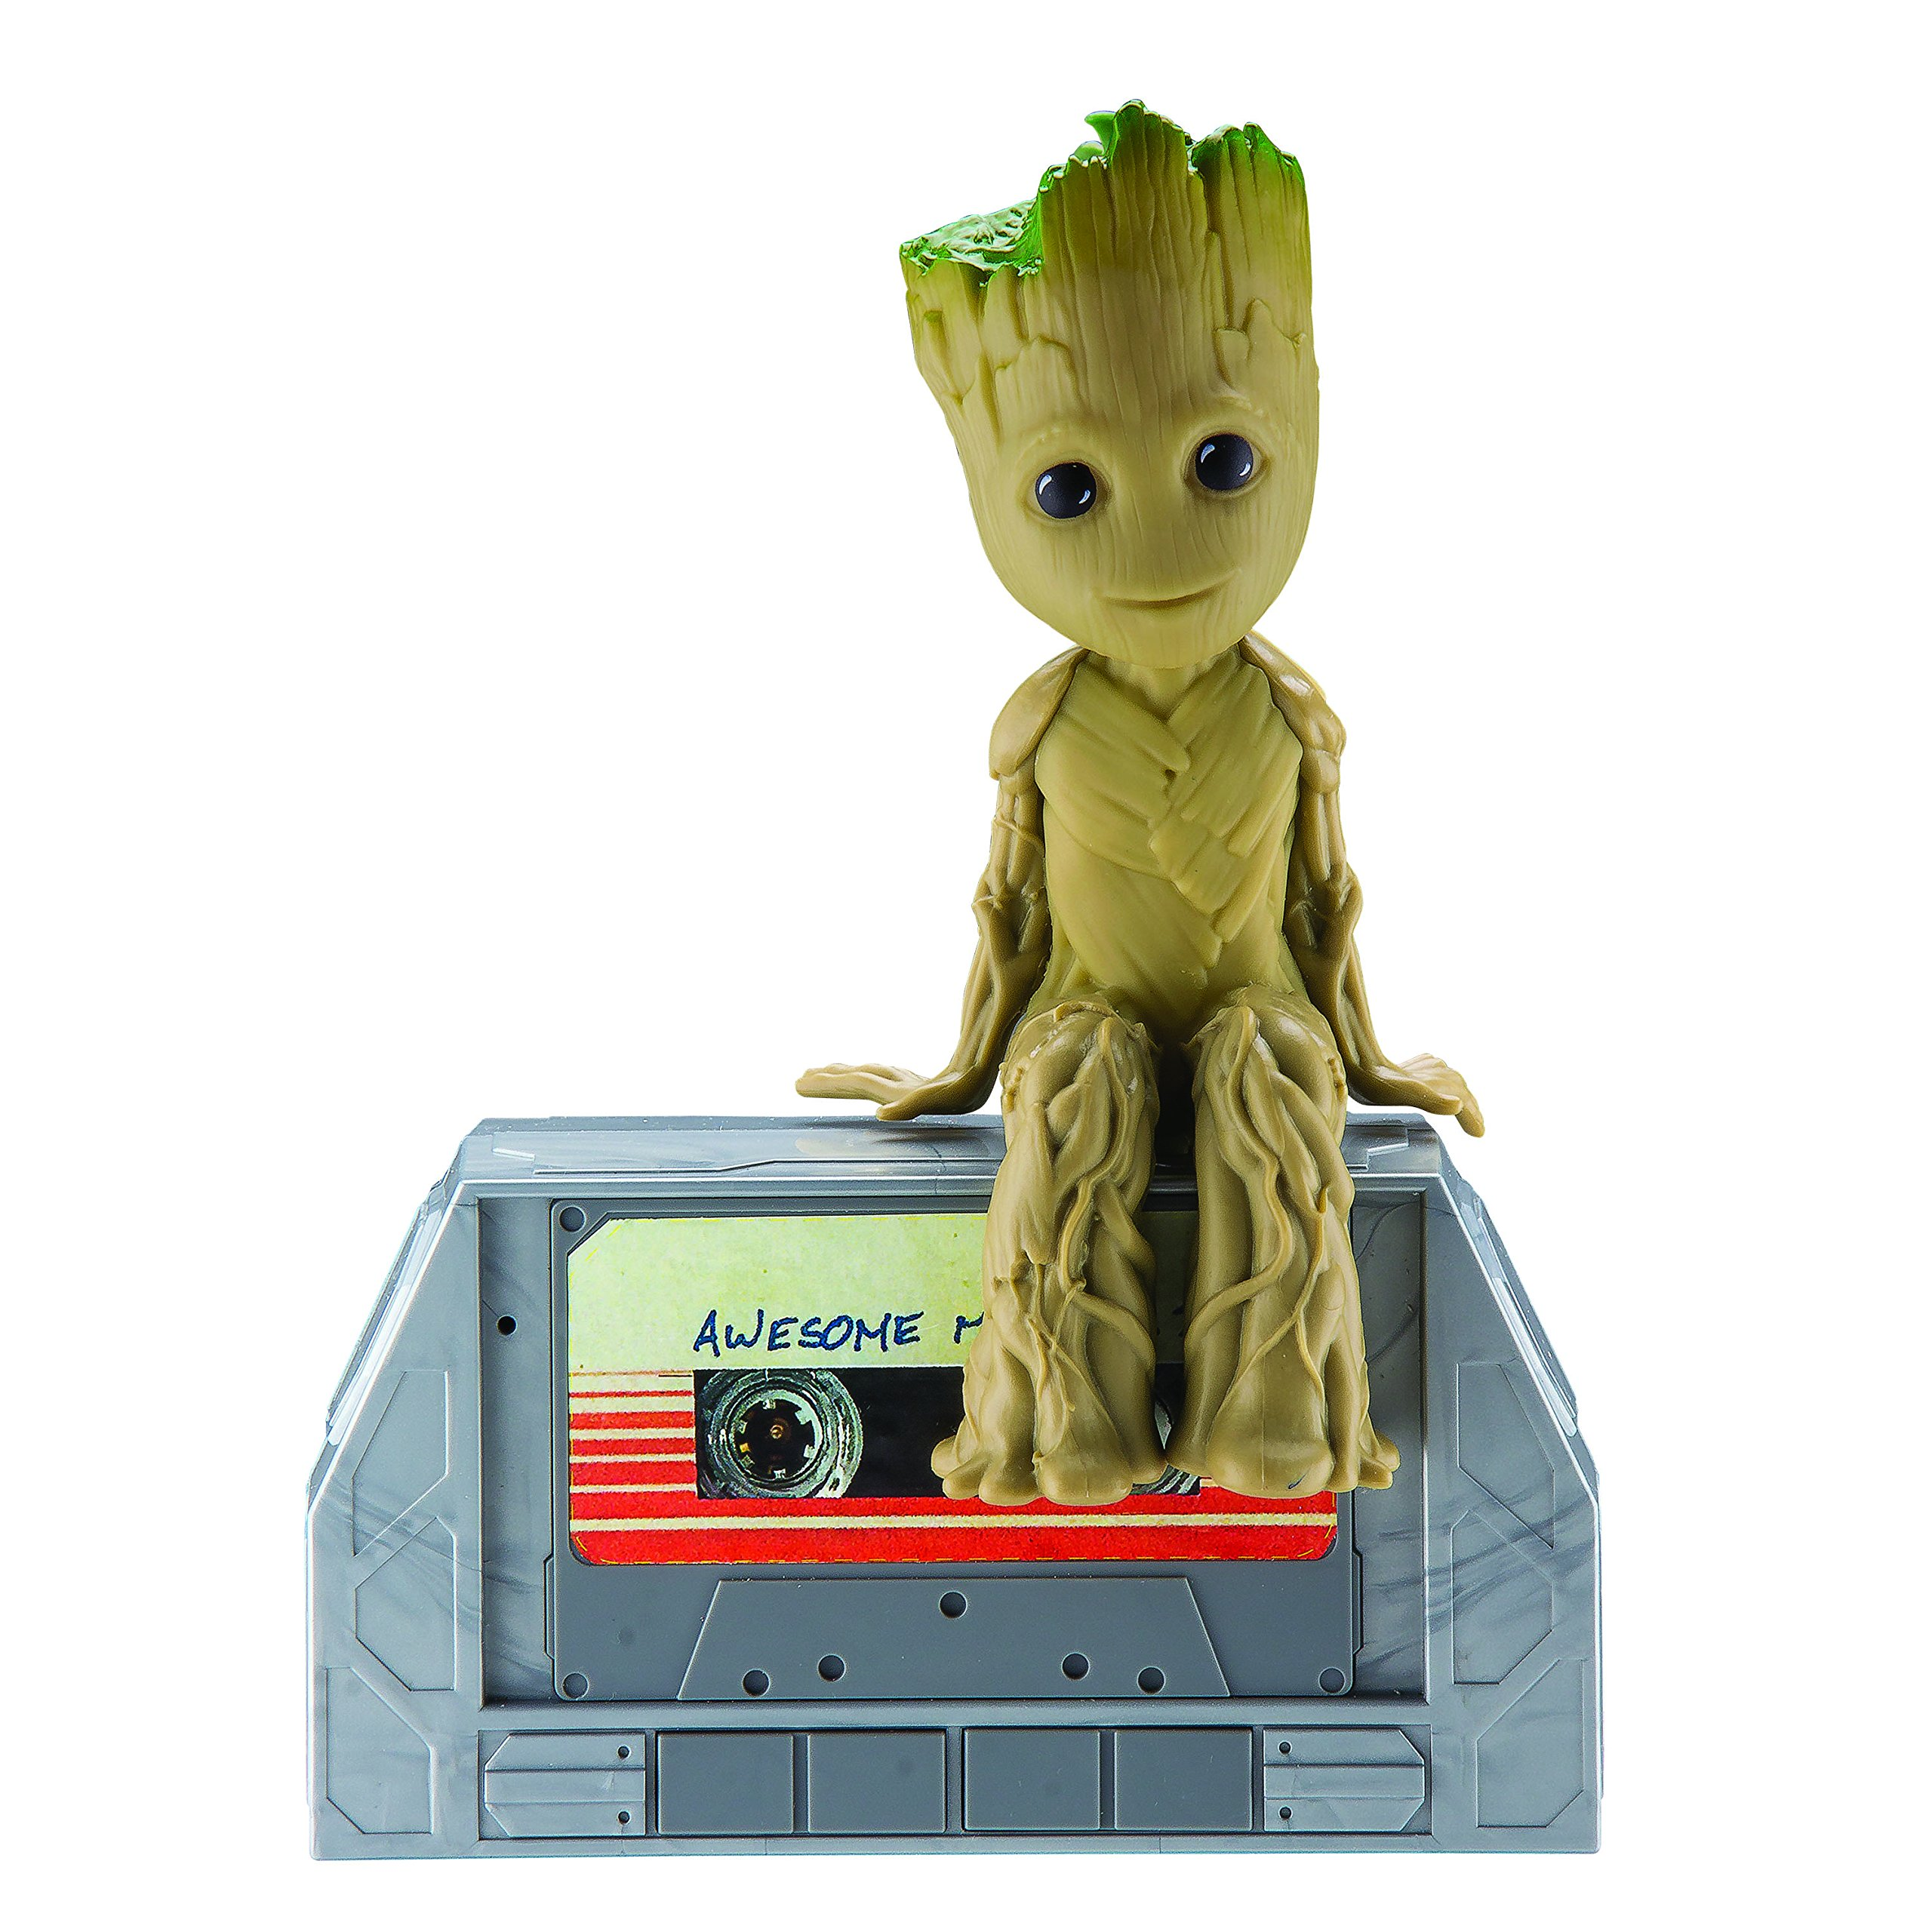 Guardians of the Galaxy Vol 2 Marvel Movie Dancing Groot Speaker Boombox Moves and Grooves to The Music by Marvel